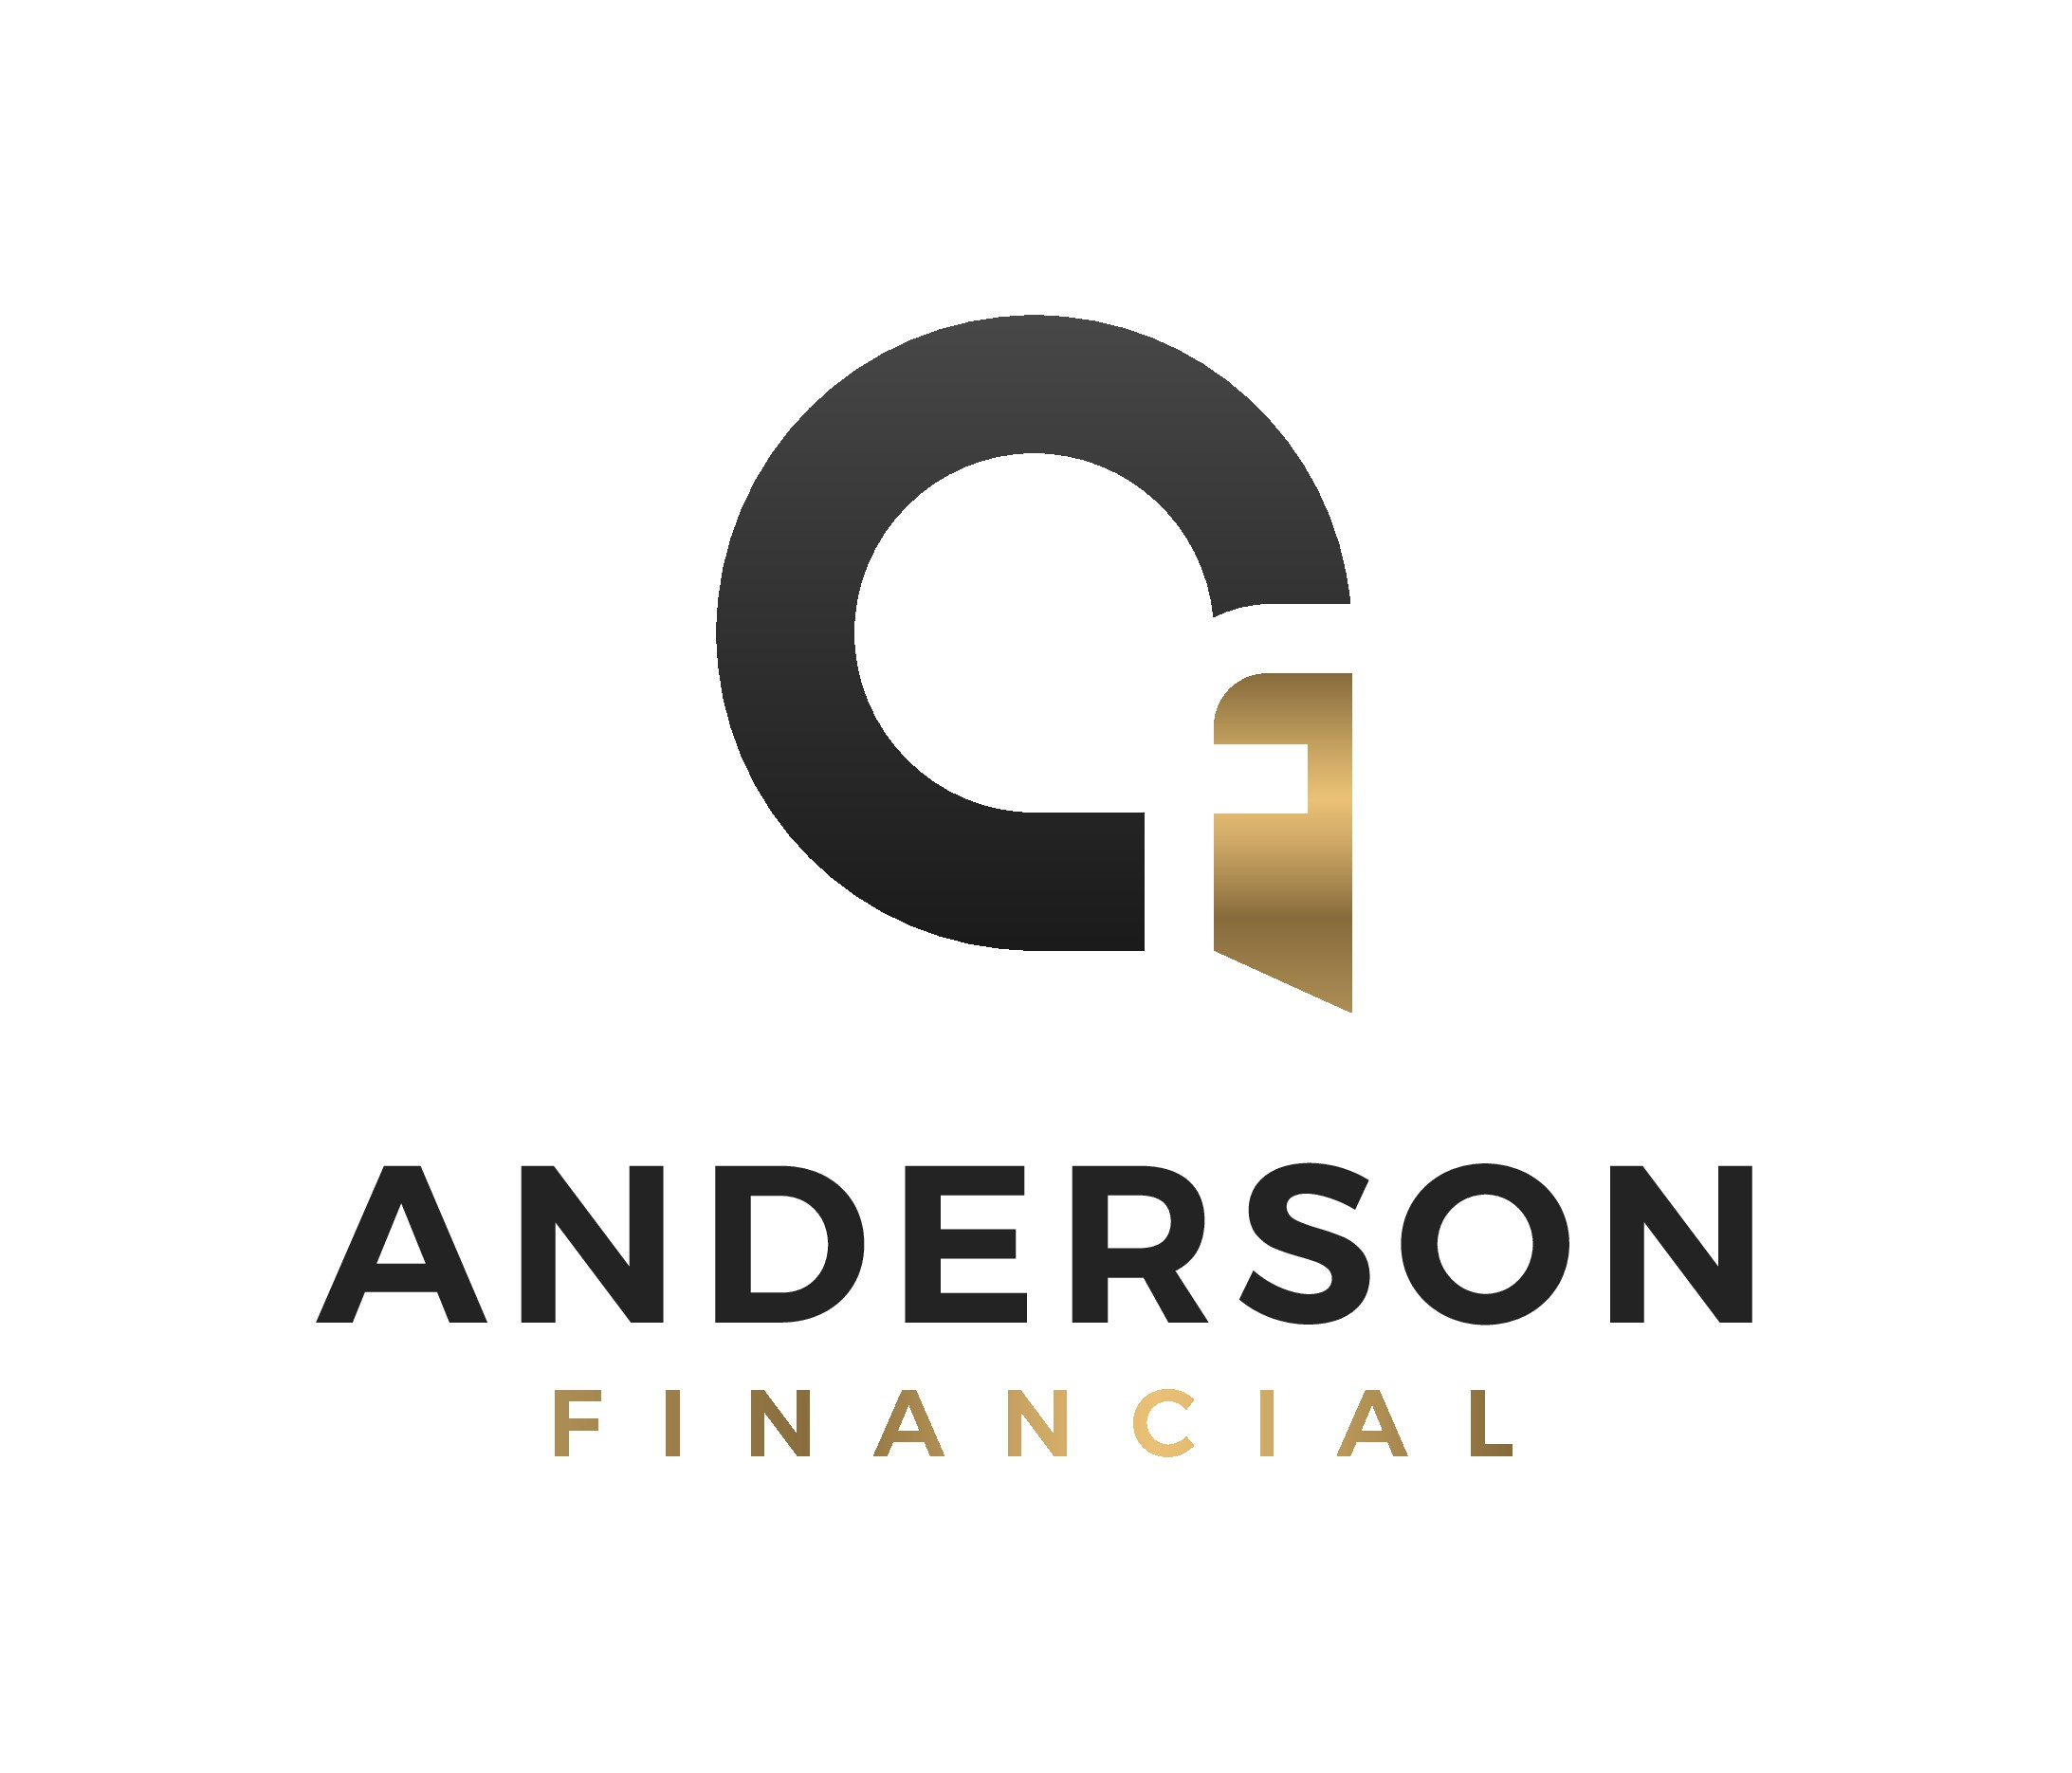 Young Financial Advisors looking to spice up the family business!